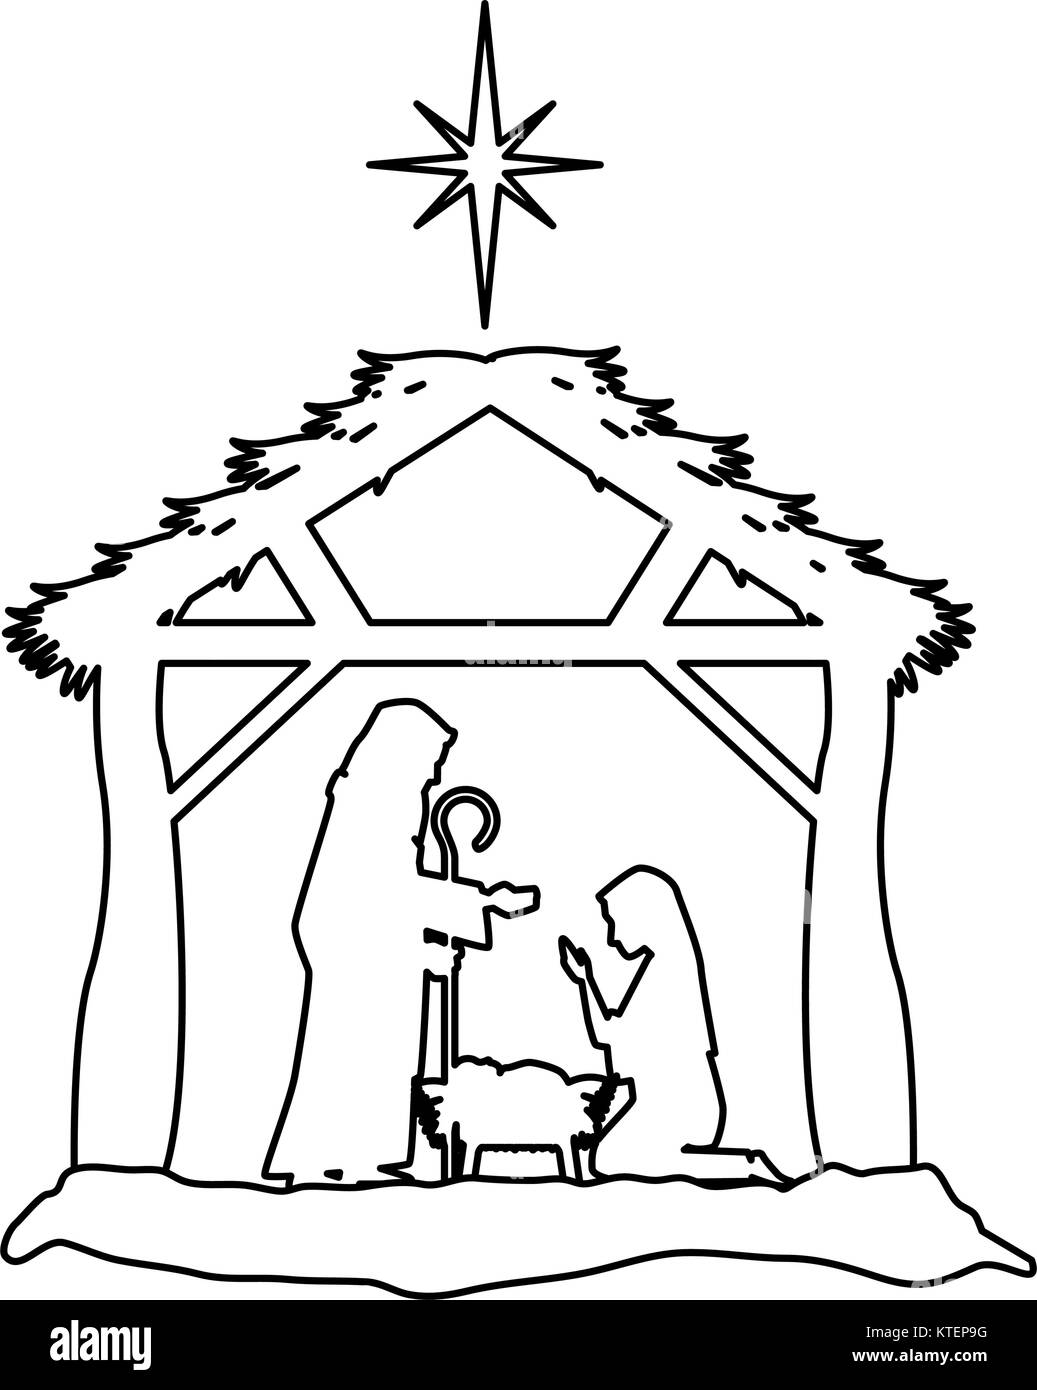 Christmas Stable Drawing.Holy Family Silhouette In Stable Christmas Characters Vector